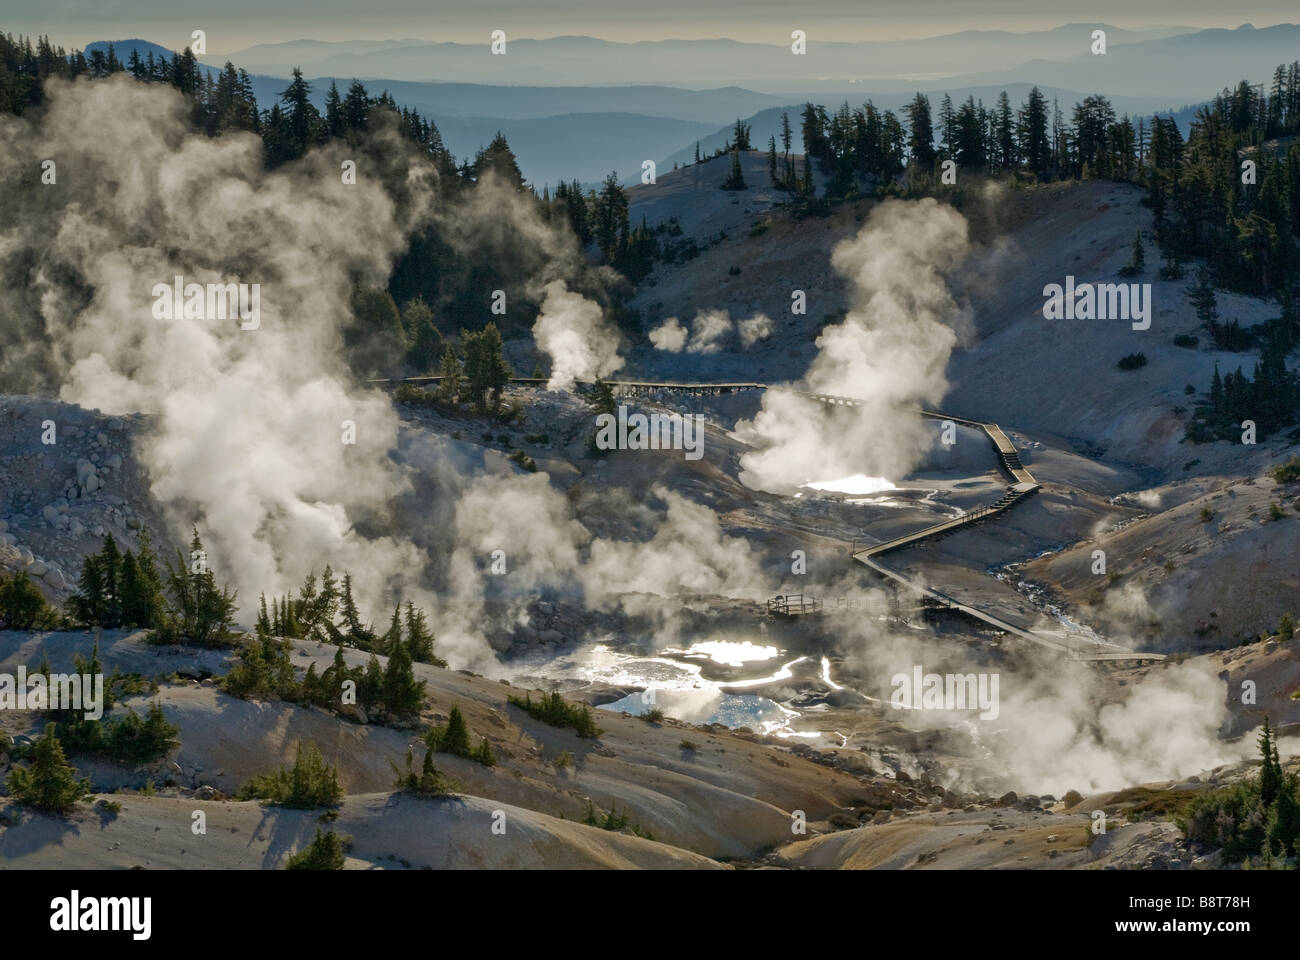 Fumaroles steam vents at Bumpass Hell area in Lassen Volcanic National Park California USA - Stock Image